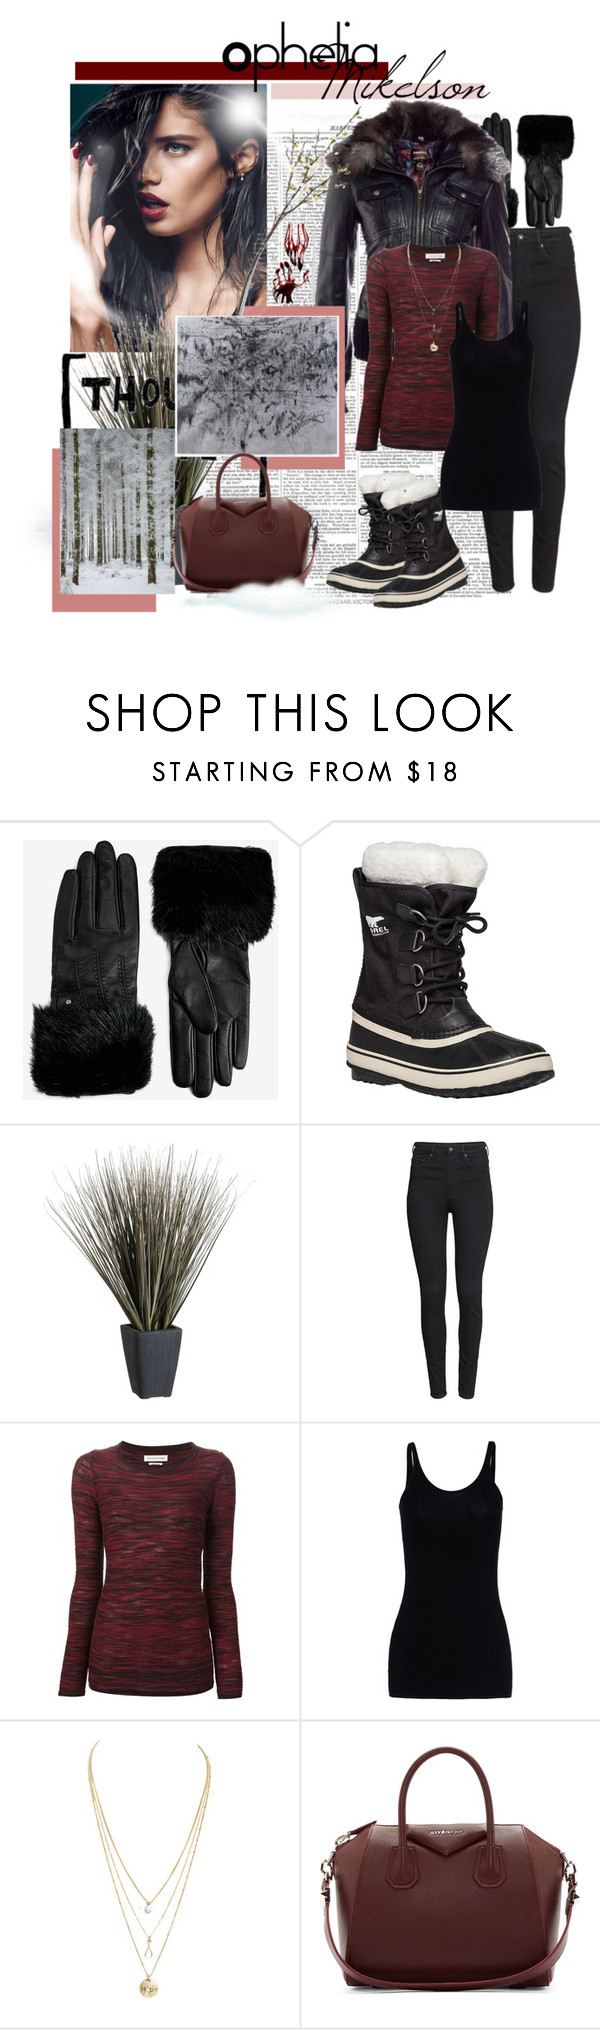 """""""Norse Gods VI"""" by psychoticbitch on Polyvore featuring moda, Ted Baker, SOREL, Crate and Barrel, H&M, Isabel Marant, T By Alexander Wang y Givenchy"""